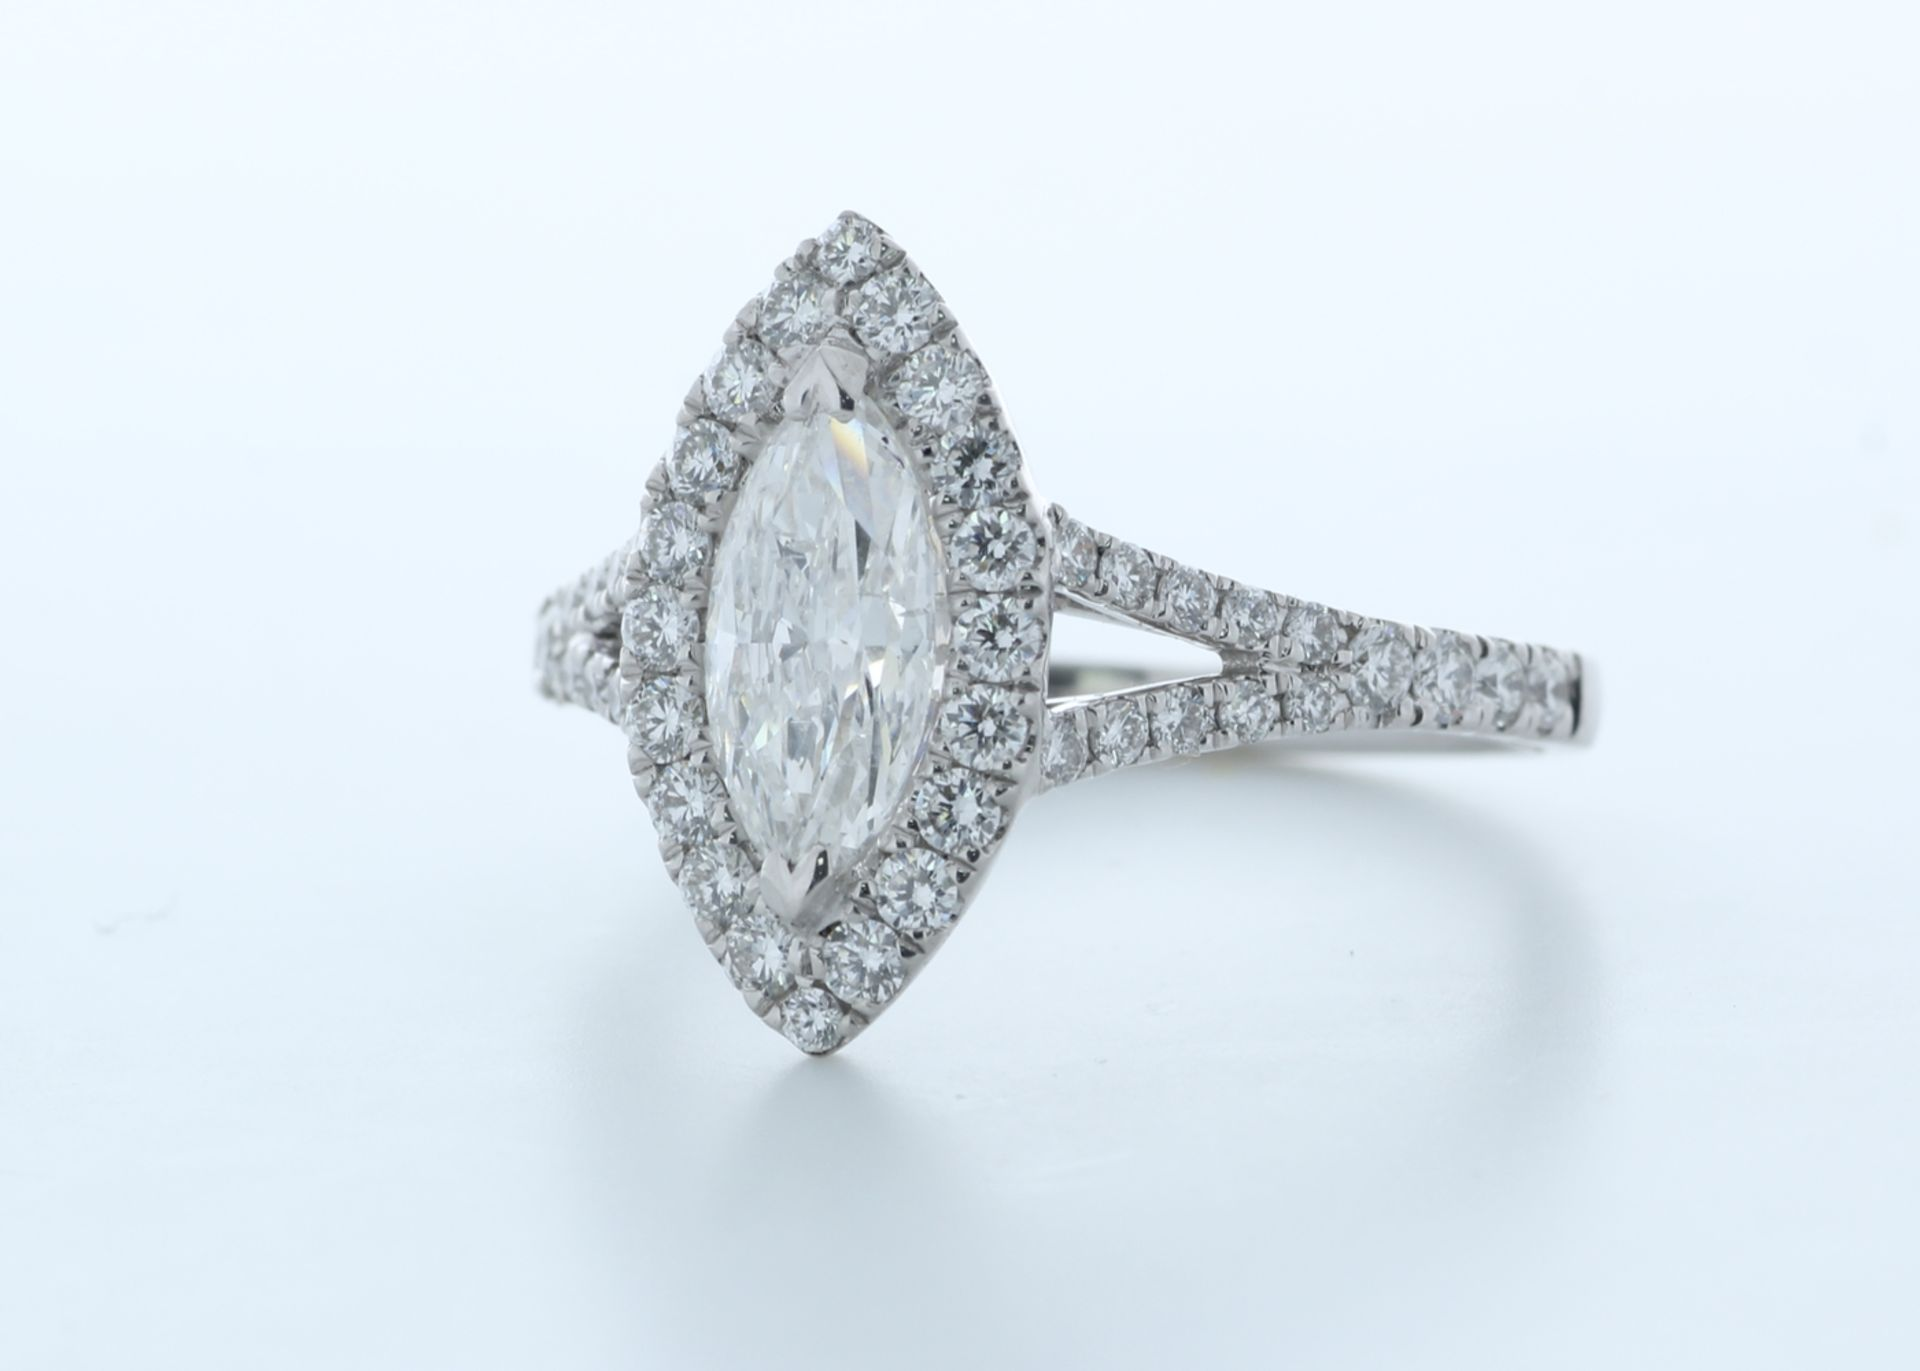 18ct White Gold Single Stone With Halo Setting Ring 1.56 (0.90) Carats - Valued by IDI £16,000. - Image 2 of 5